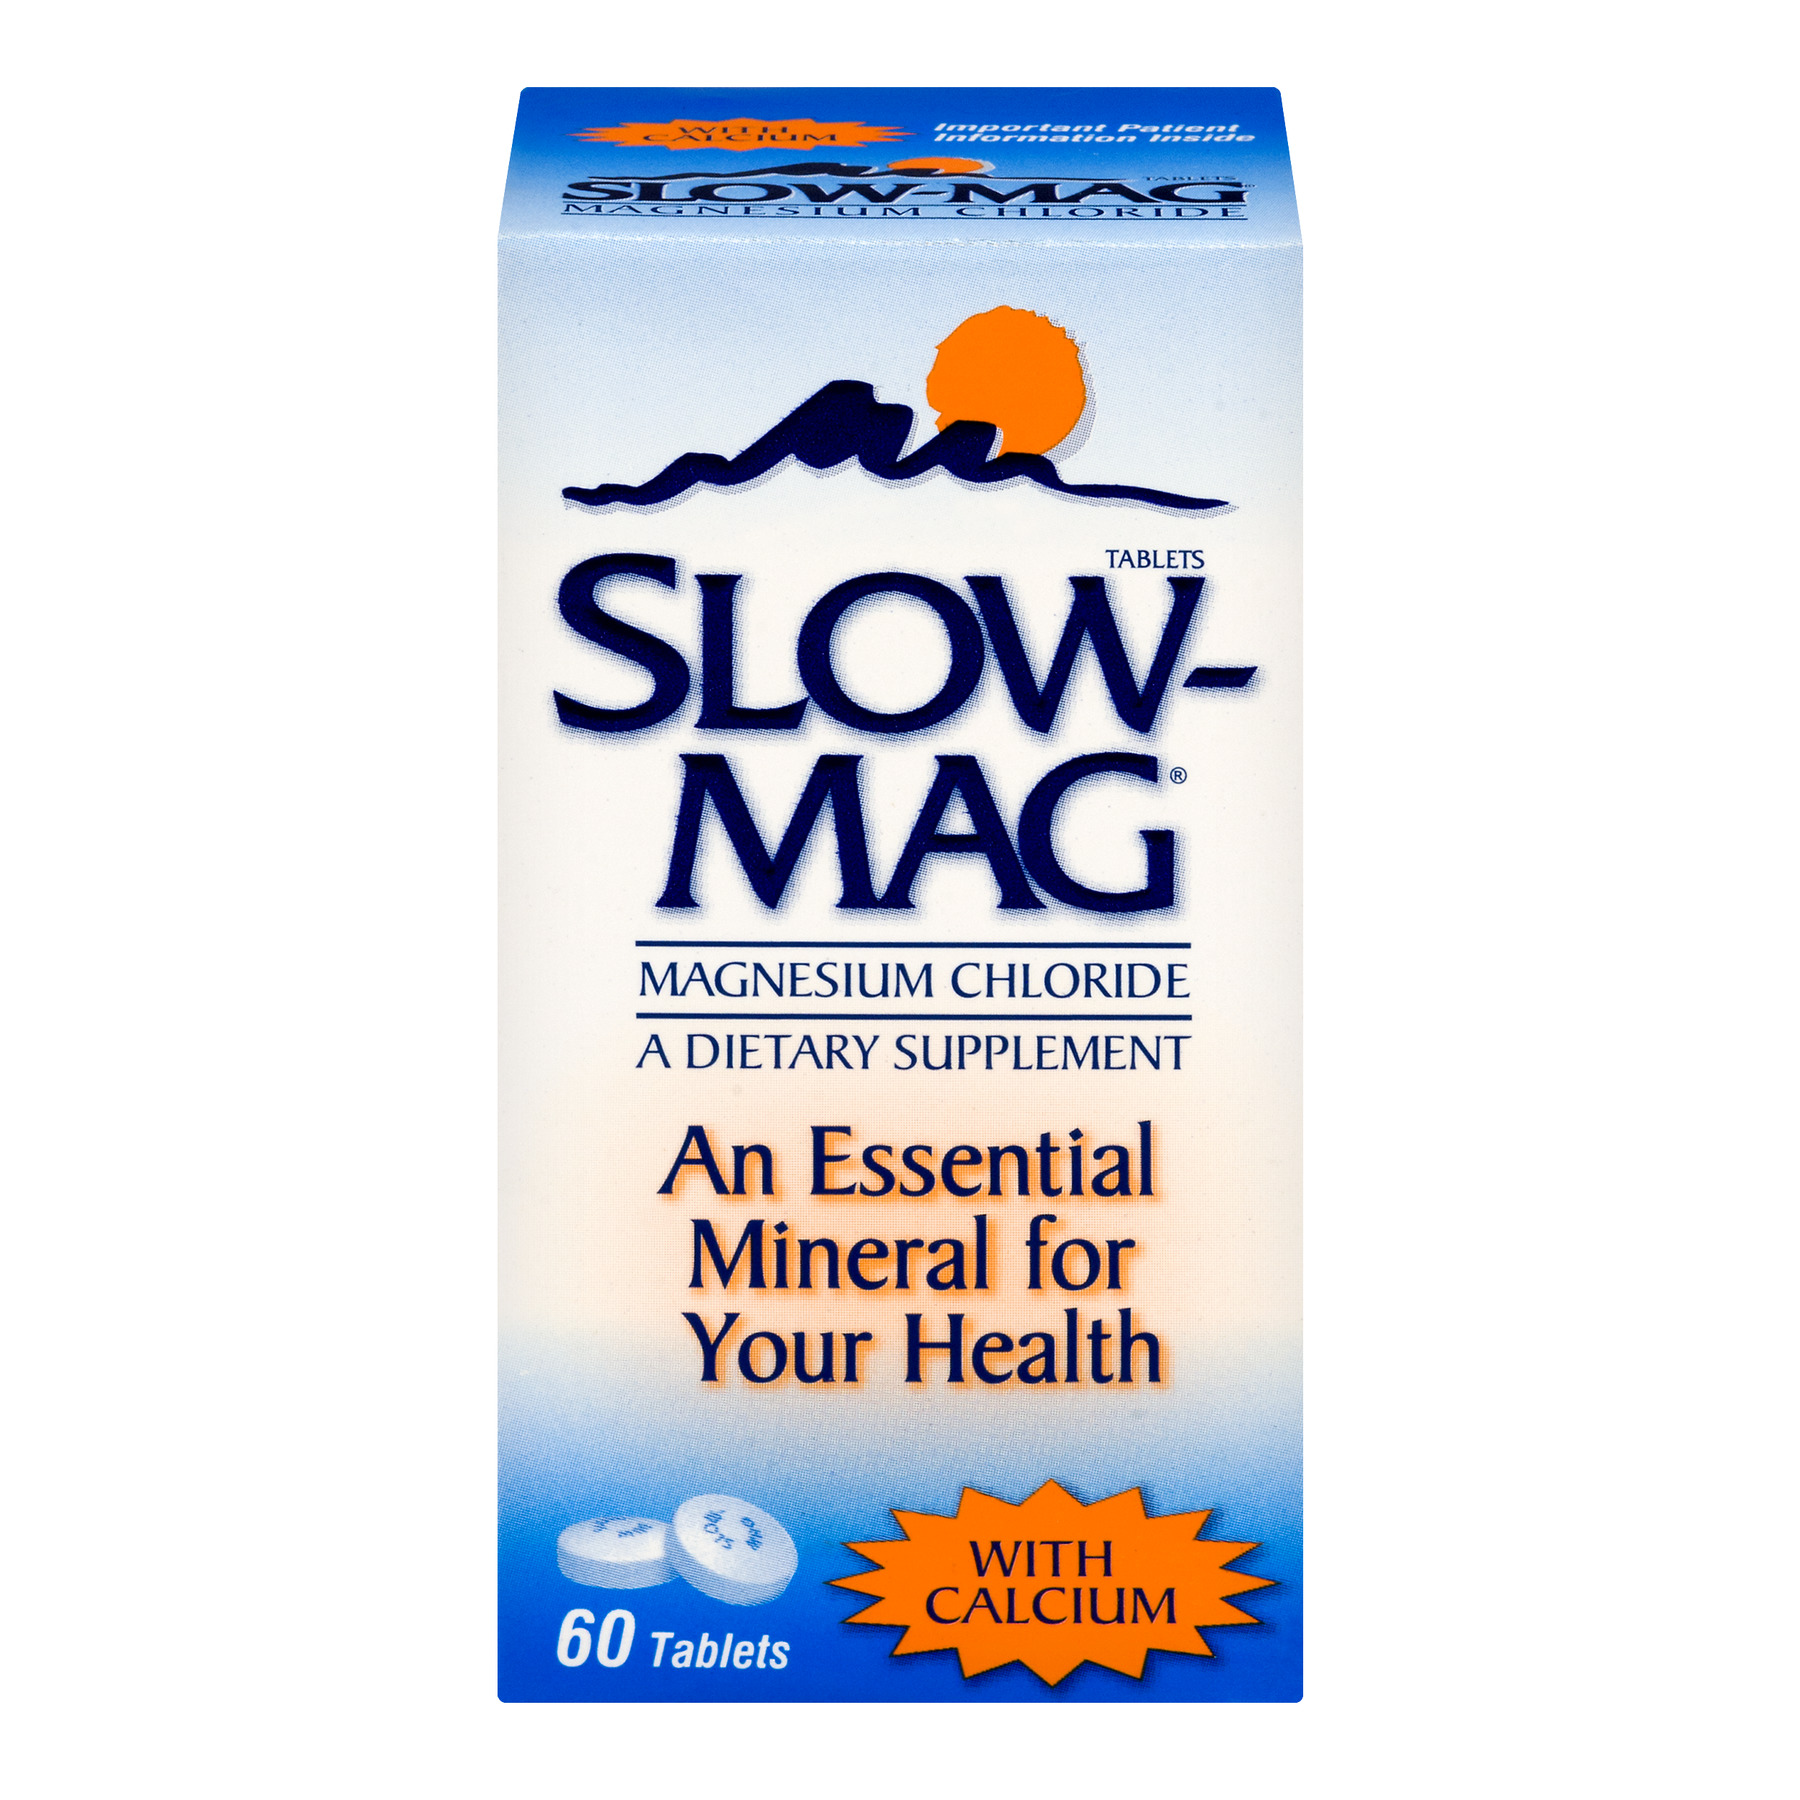 Slow-Mag Magnesium Chloride with Calcium Tablets - 60 CT60.0 CT